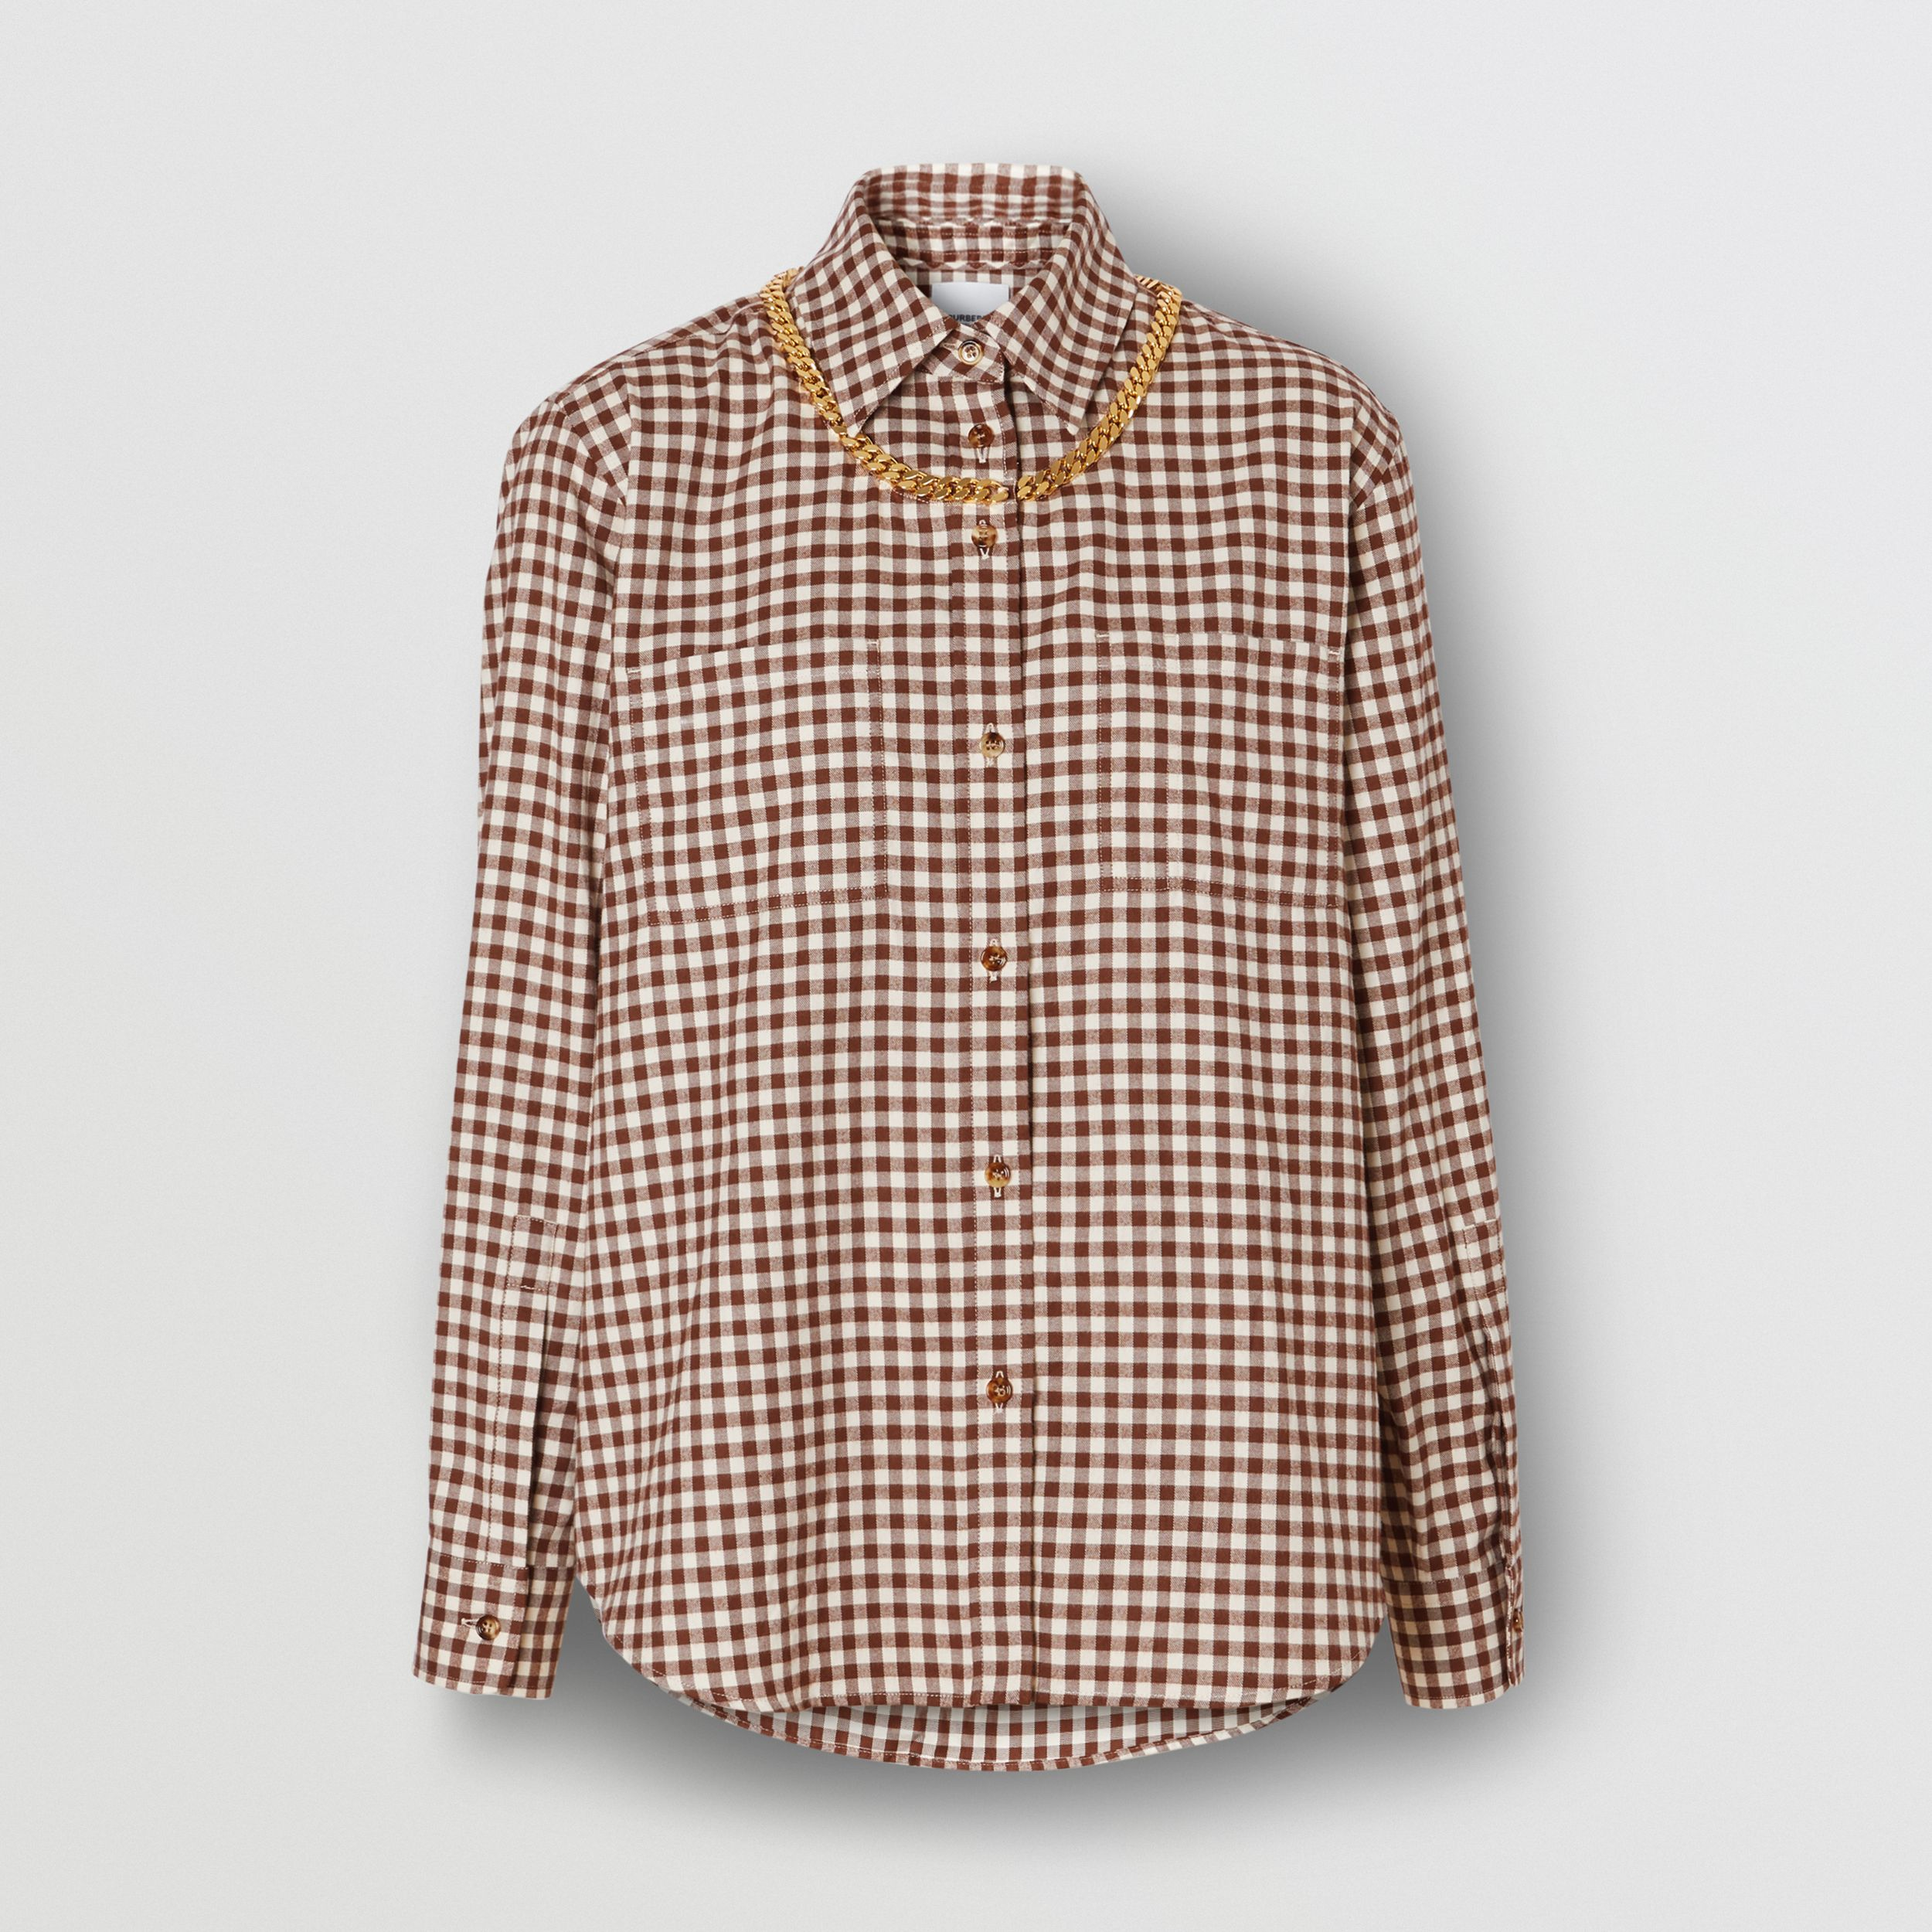 Chain Detail Gingham Cotton Flannel Oversized Shirt in Brown - Women | Burberry - 4